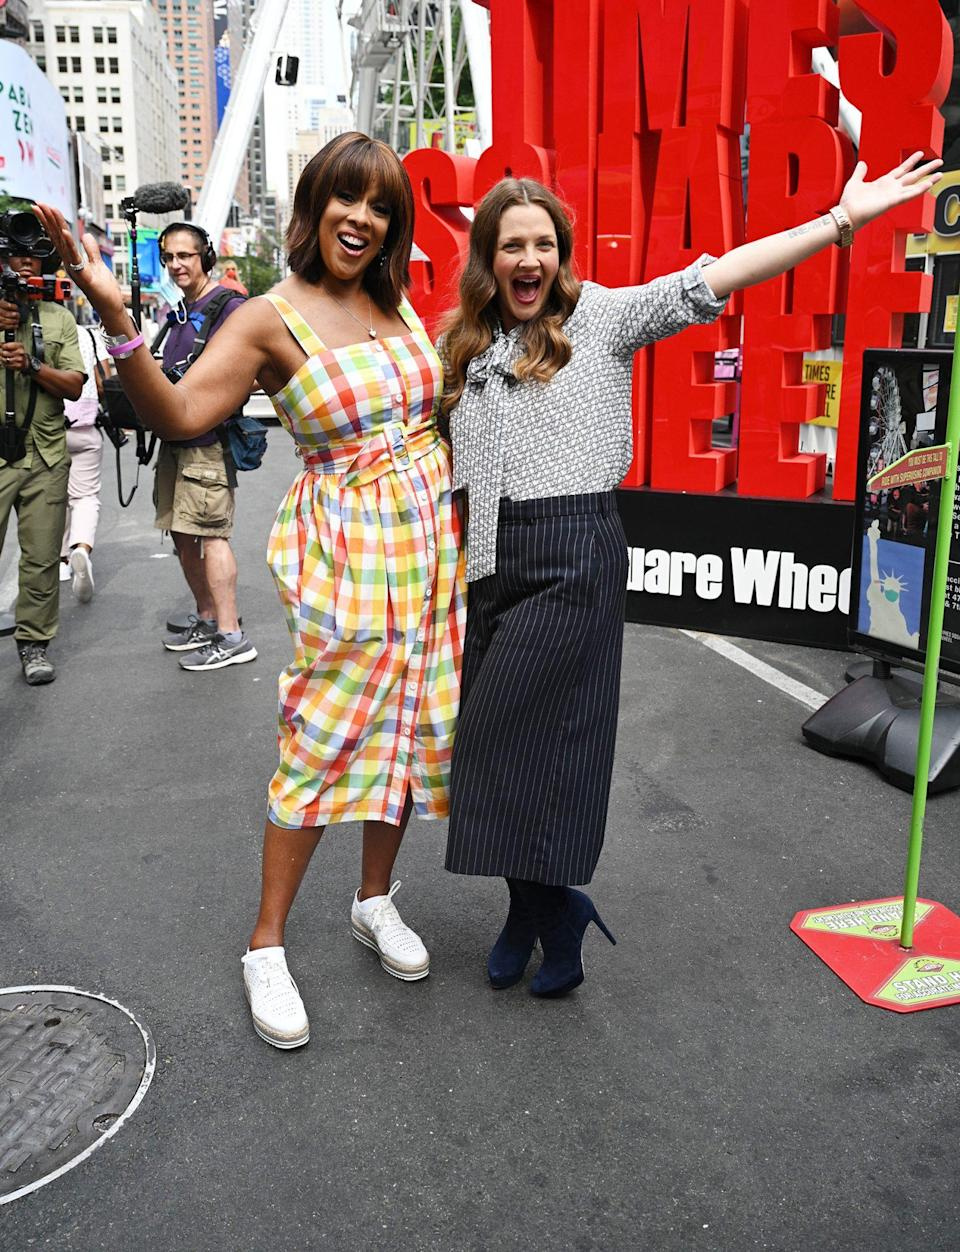 <p>Gayle King and Drew Barrymore go for a ride on the ferris wheel in Times Square on Aug. 31 in N.Y.C. </p>